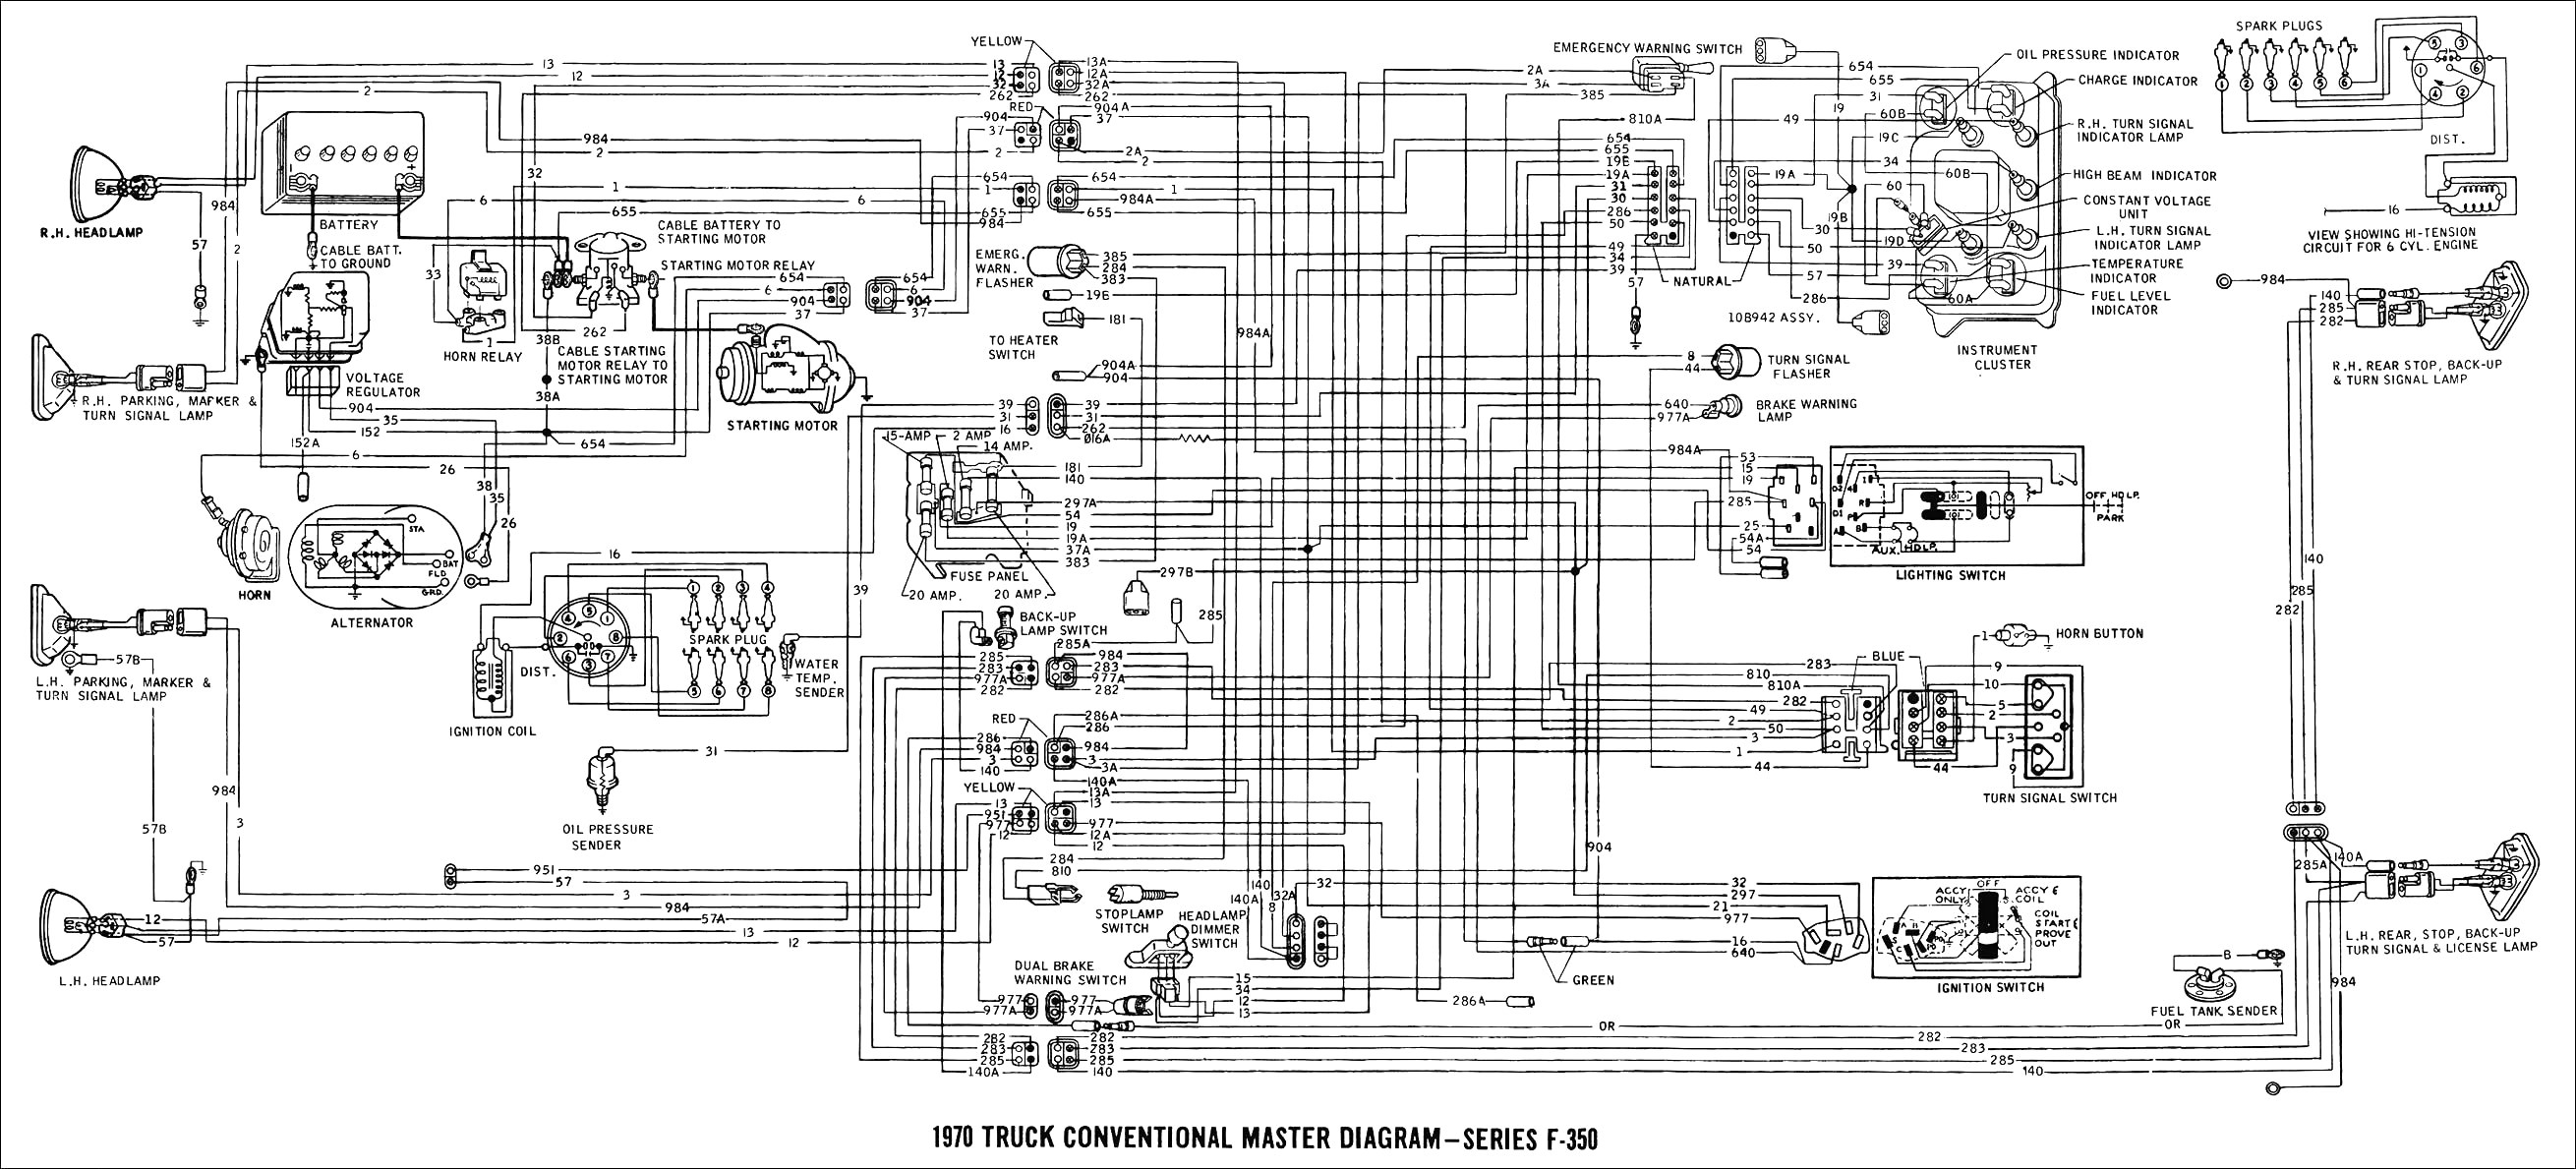 How to Make A Wiring Diagram Unique | Wiring Diagram Image